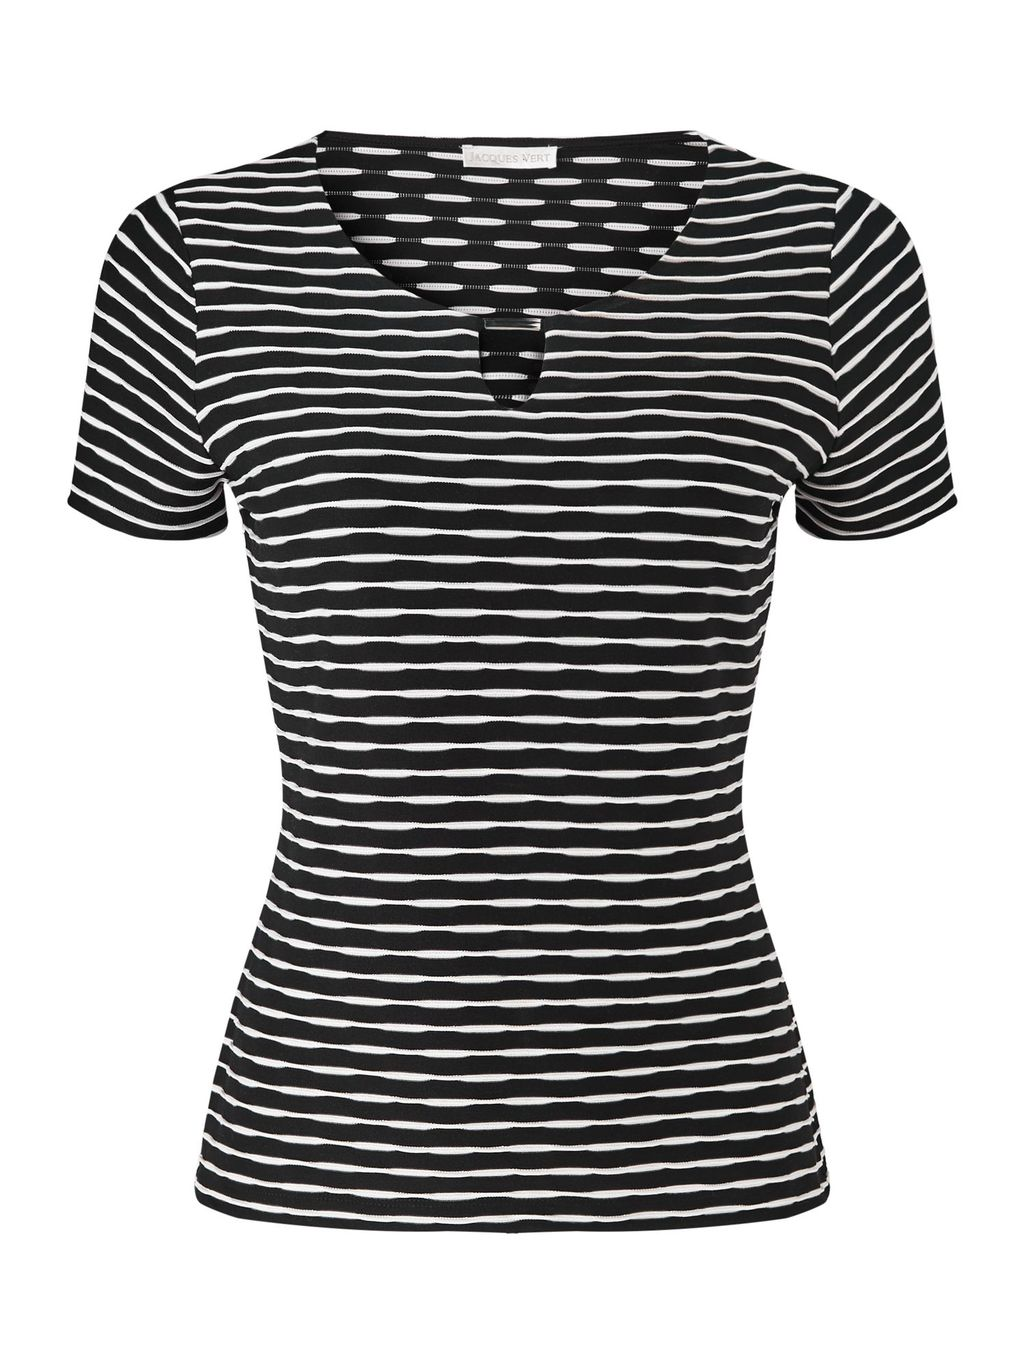 Black And White Textured Top, Multi Coloured - neckline: v-neck; pattern: horizontal stripes; predominant colour: black; occasions: casual, creative work; length: standard; style: top; fibres: polyester/polyamide - 100%; fit: tailored/fitted; sleeve length: short sleeve; sleeve style: standard; pattern type: fabric; texture group: other - light to midweight; pattern size: big & busy (top); season: s/s 2016